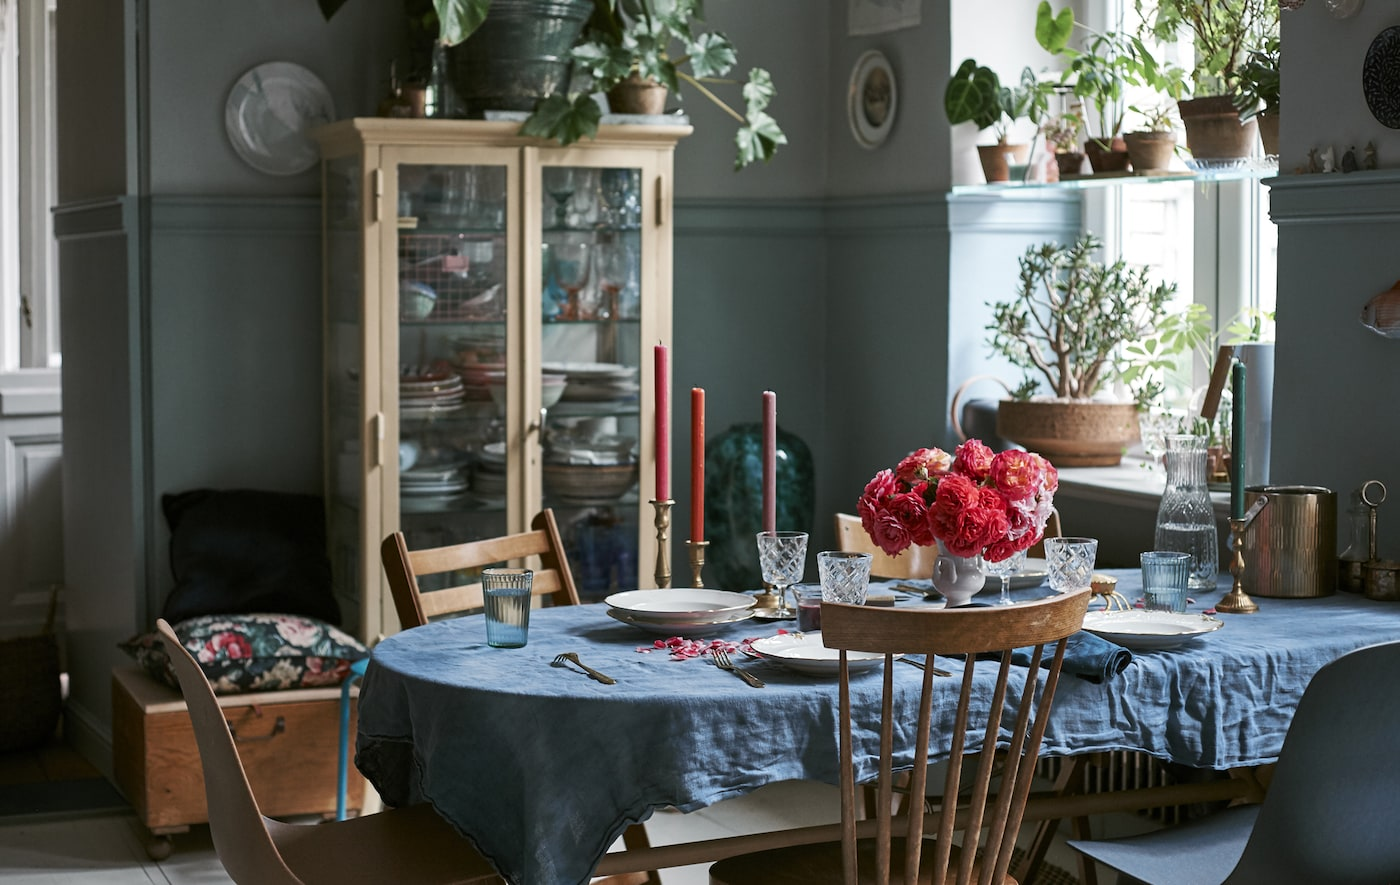 A dining room with cutlery, glassware, chairs and cushions.